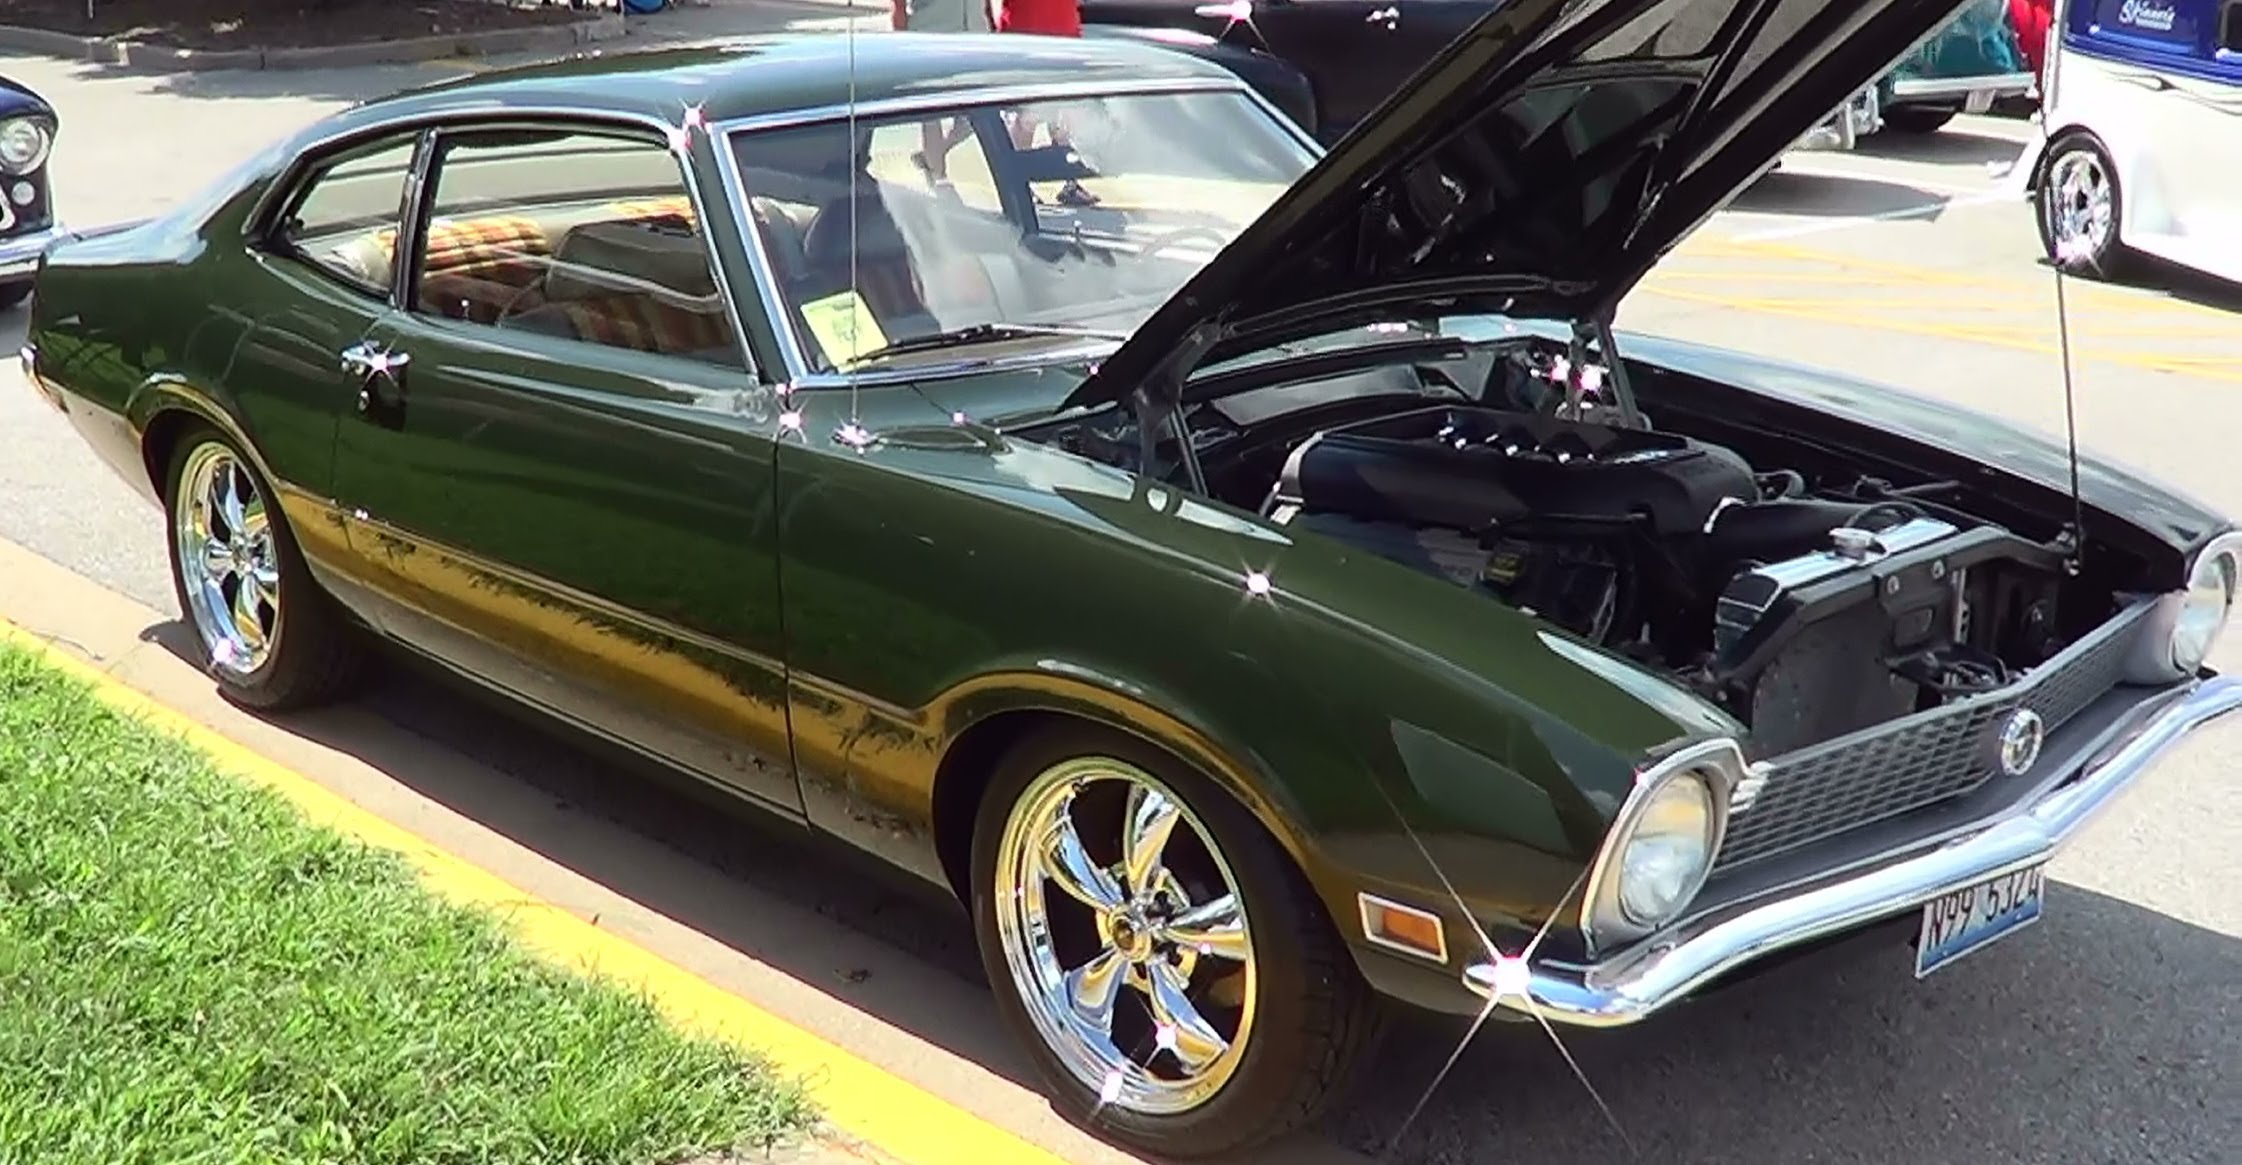 1970 ford maverick 5 0 coyote scottiedtv coolest cars on the web